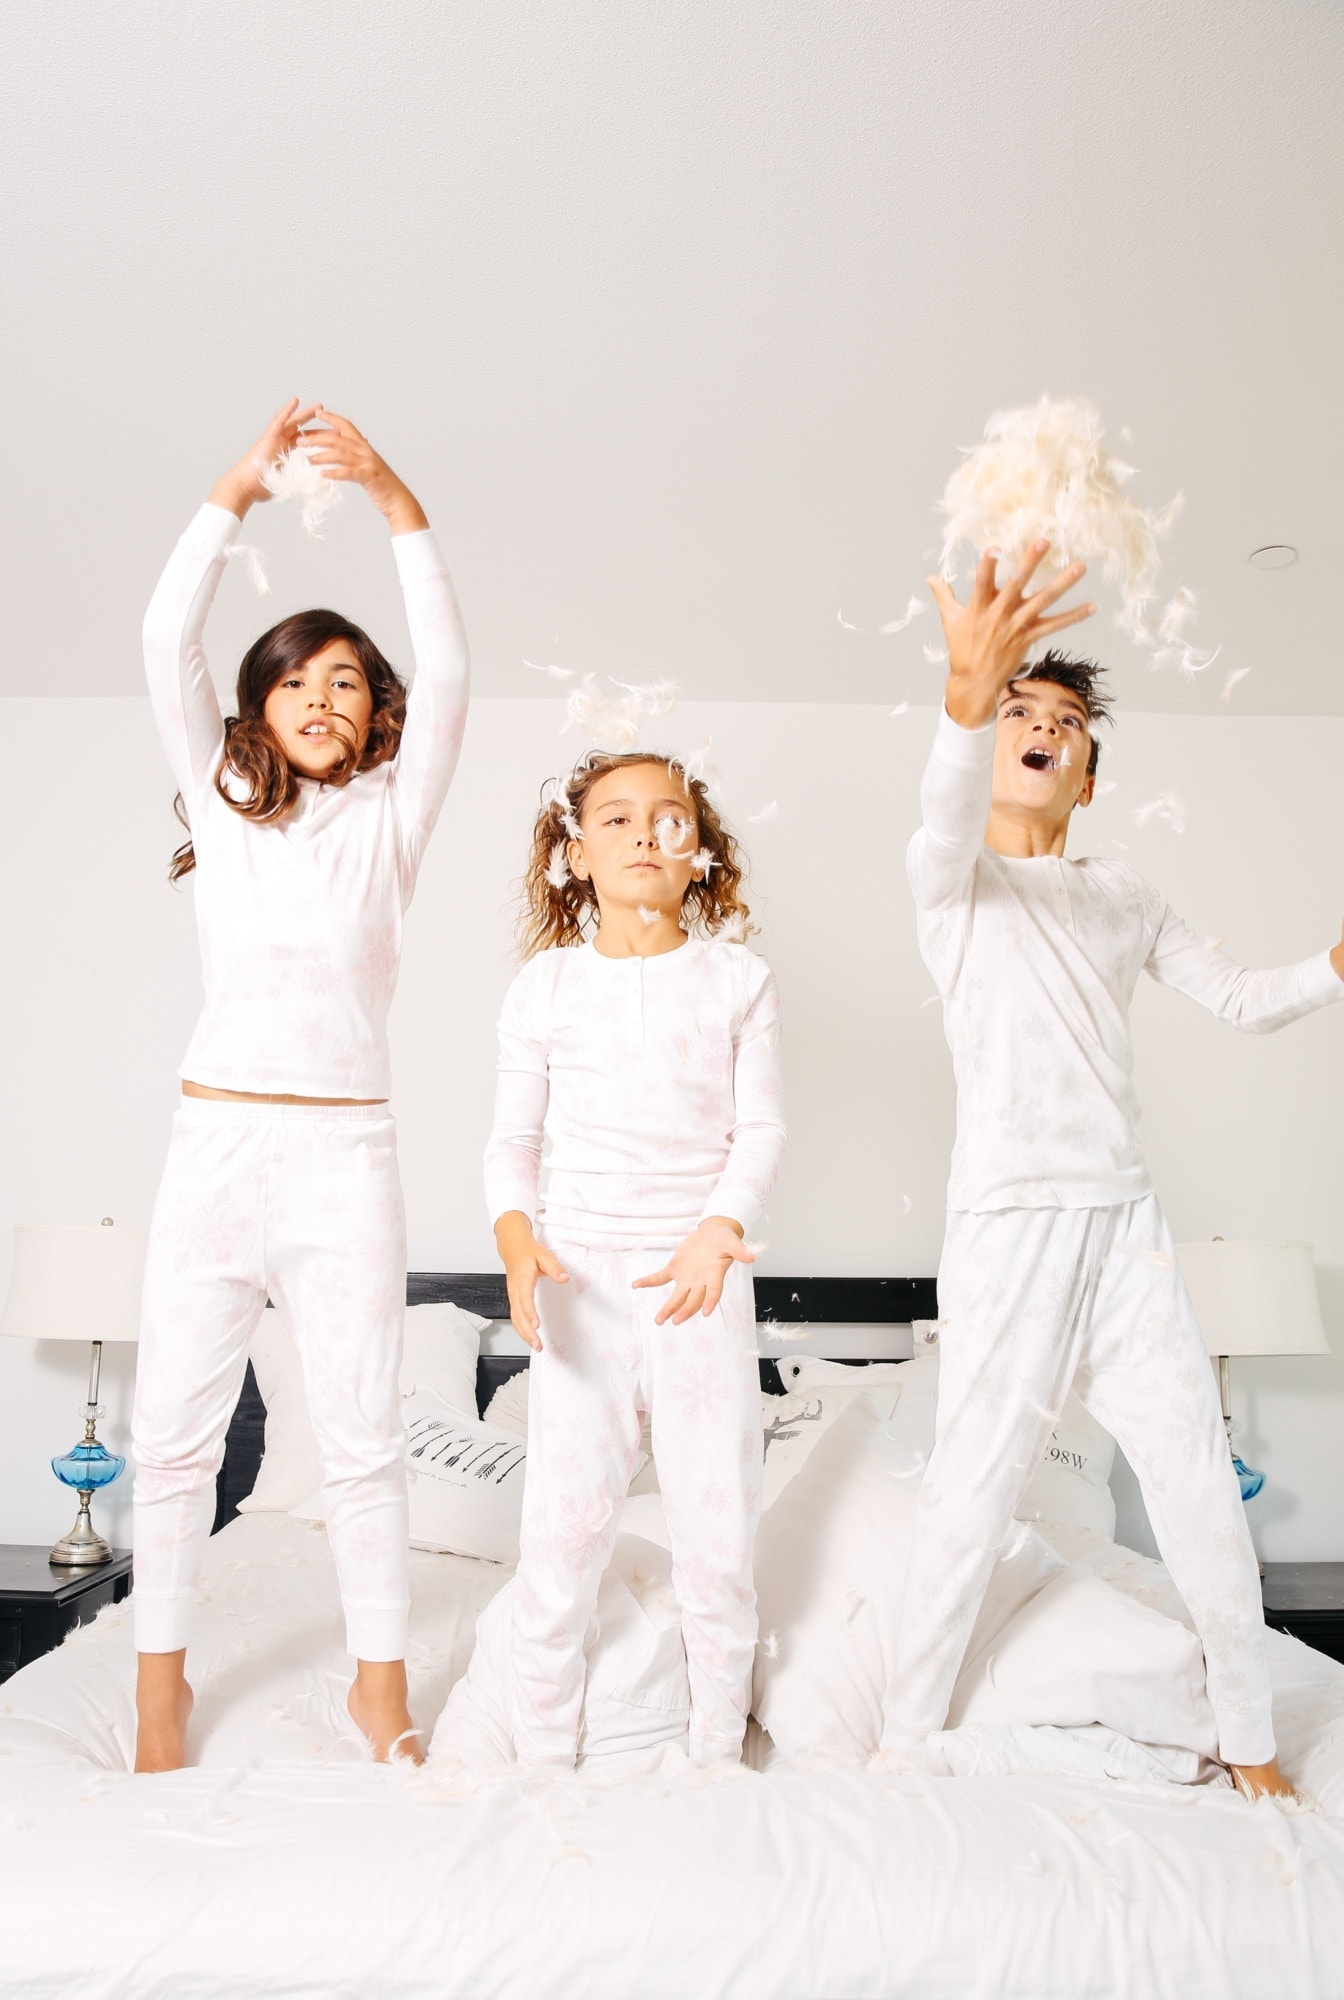 kids jumping on bed with feathers